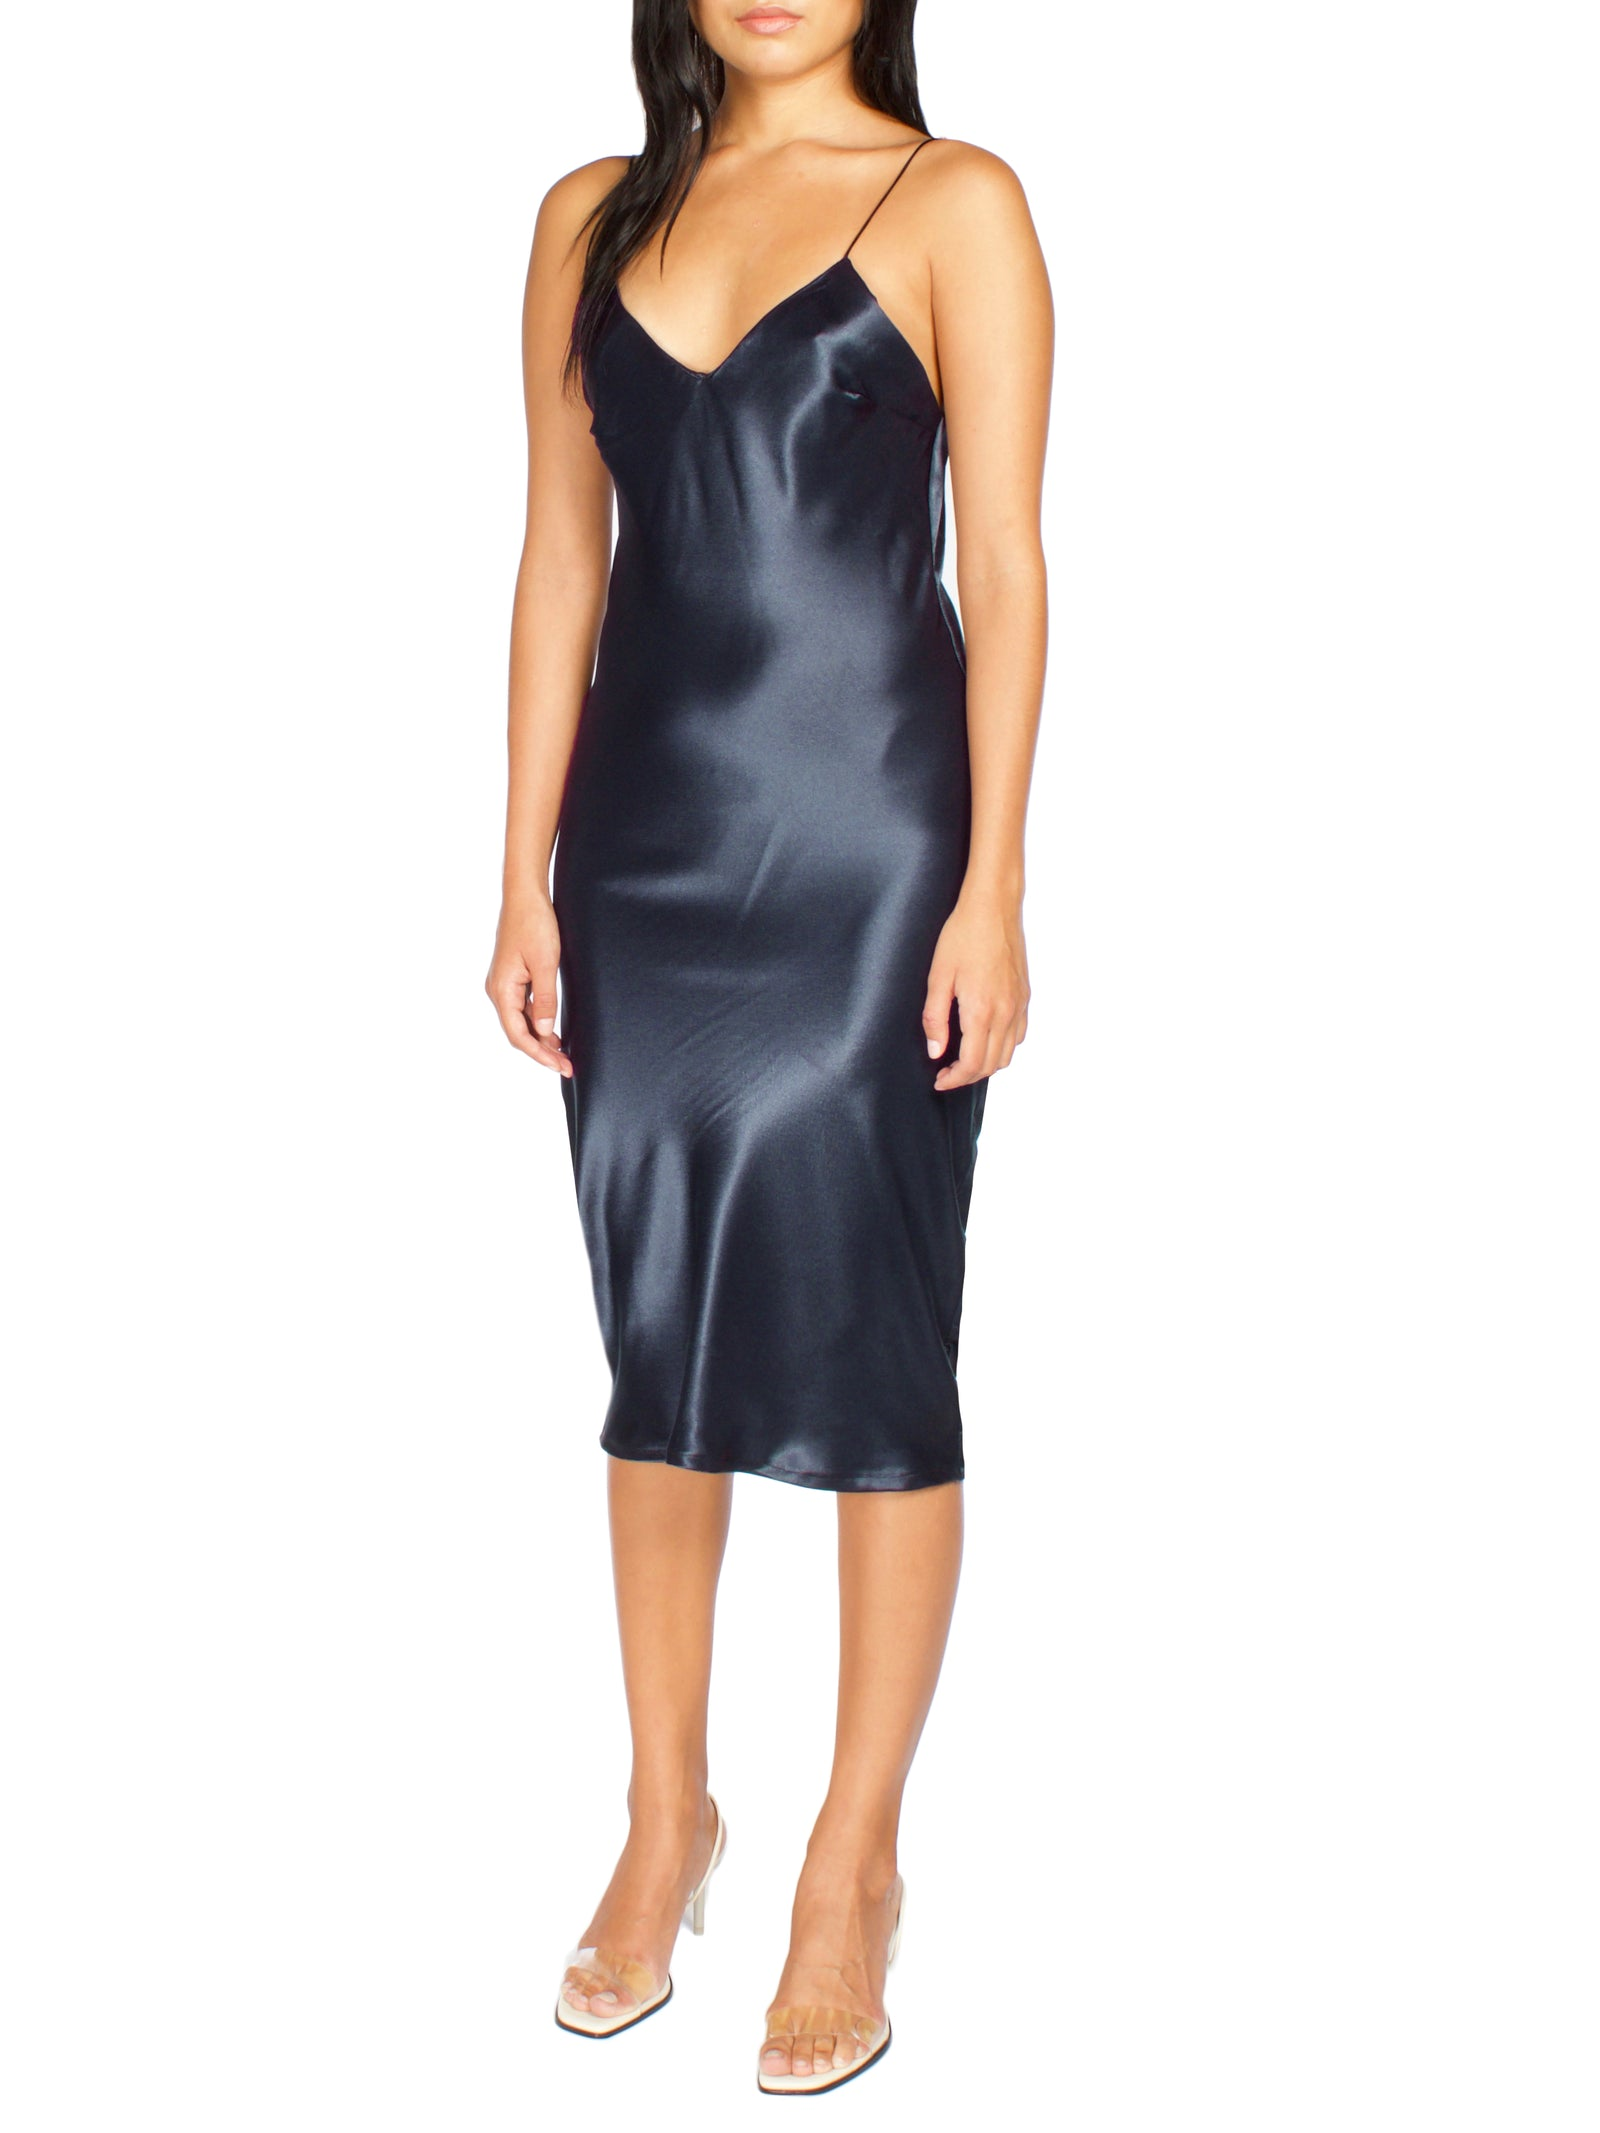 DREA Midi Slip Dress - PRADEGAL